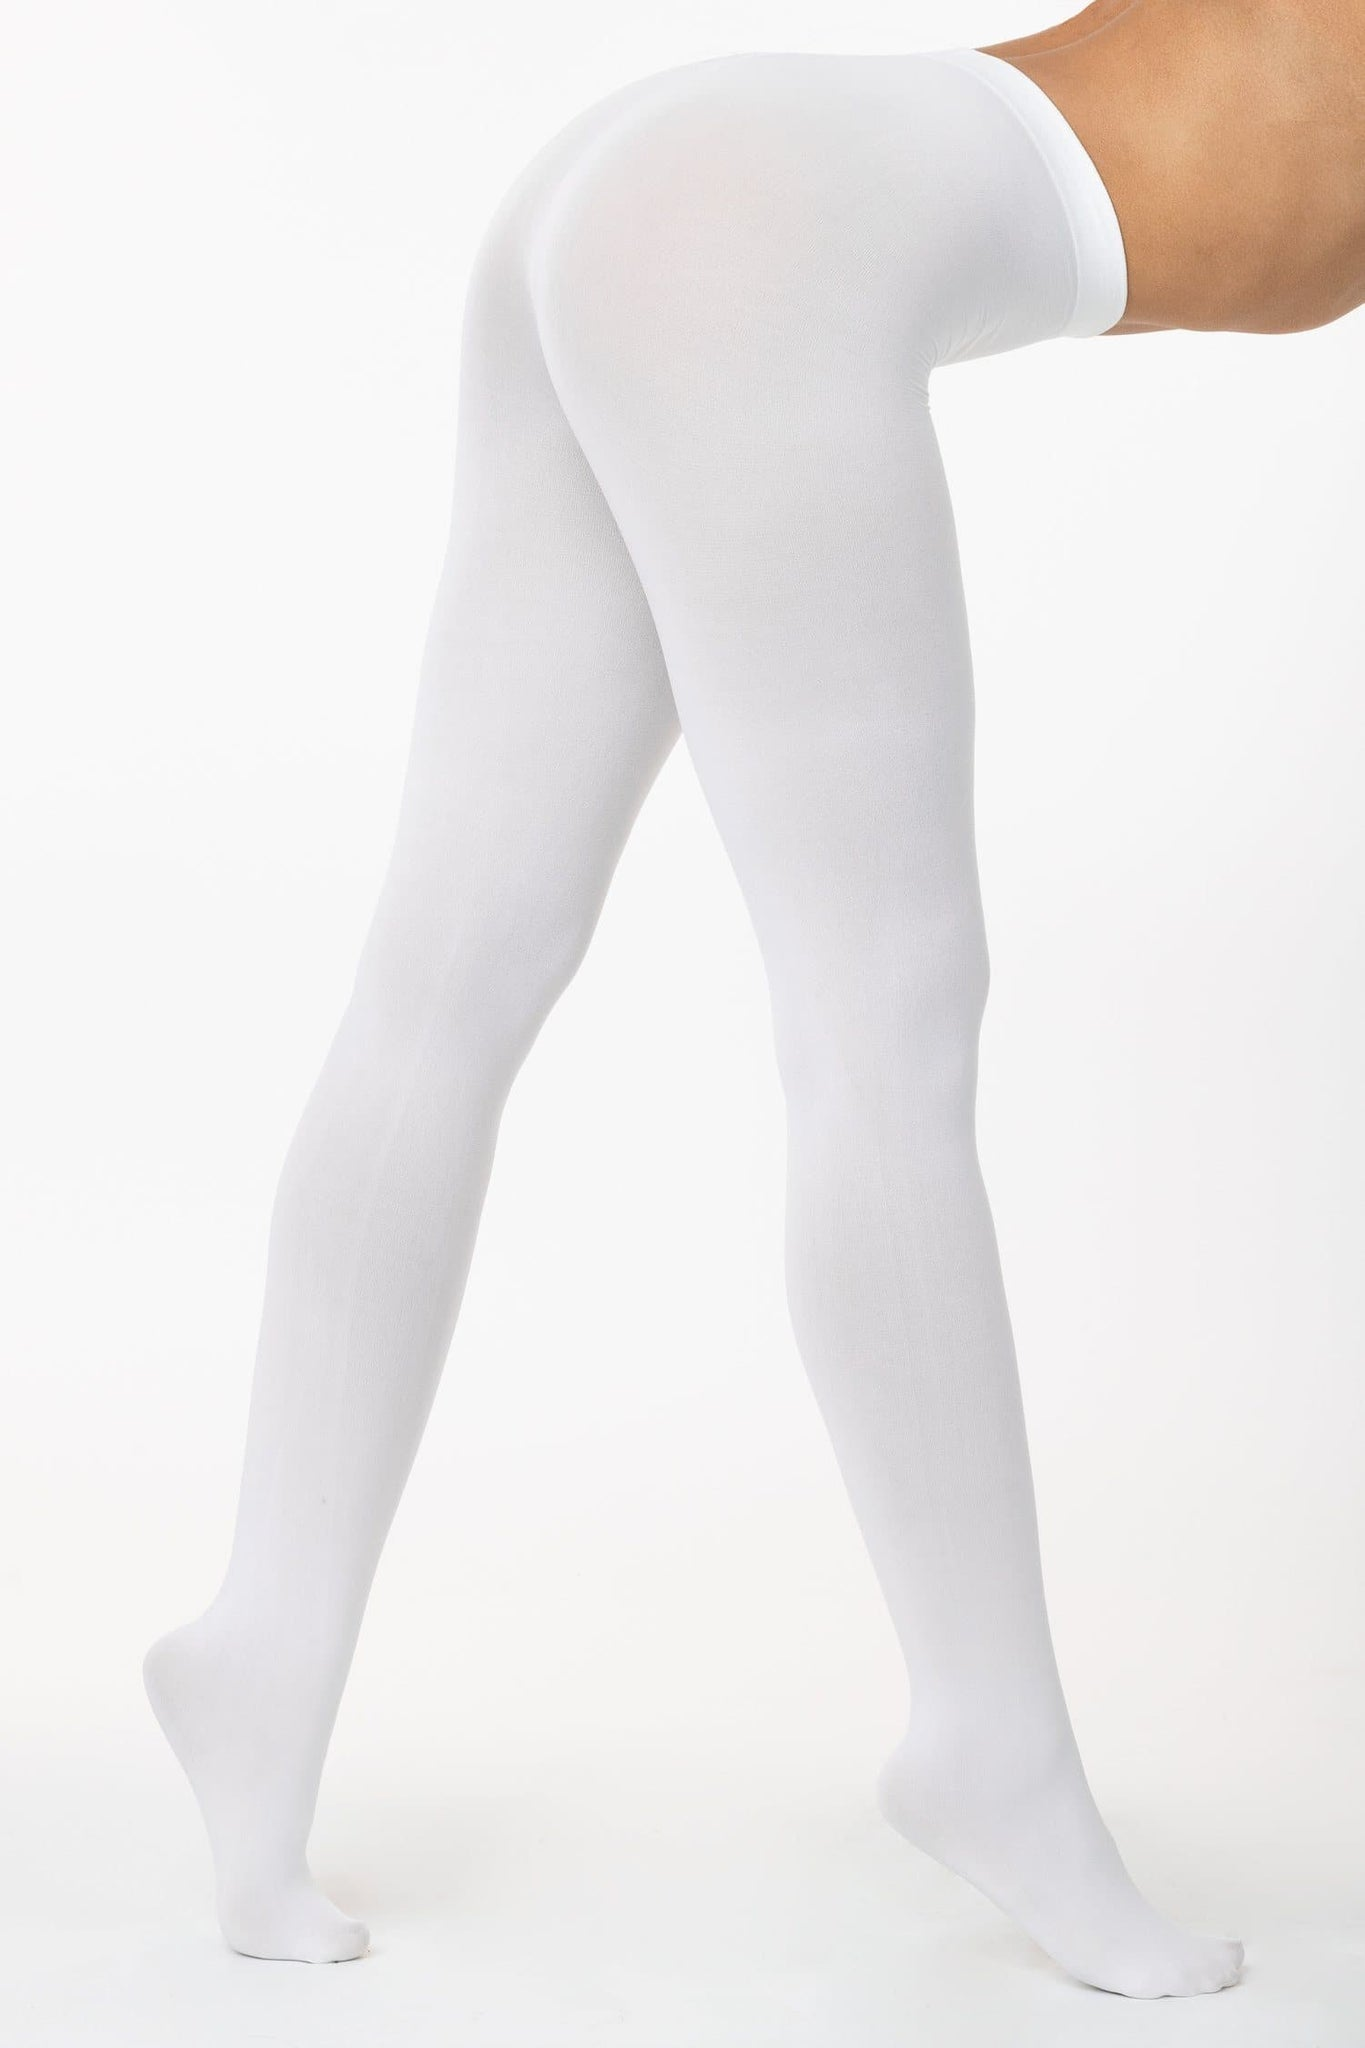 RN331 - Super Opaque Dance Tights